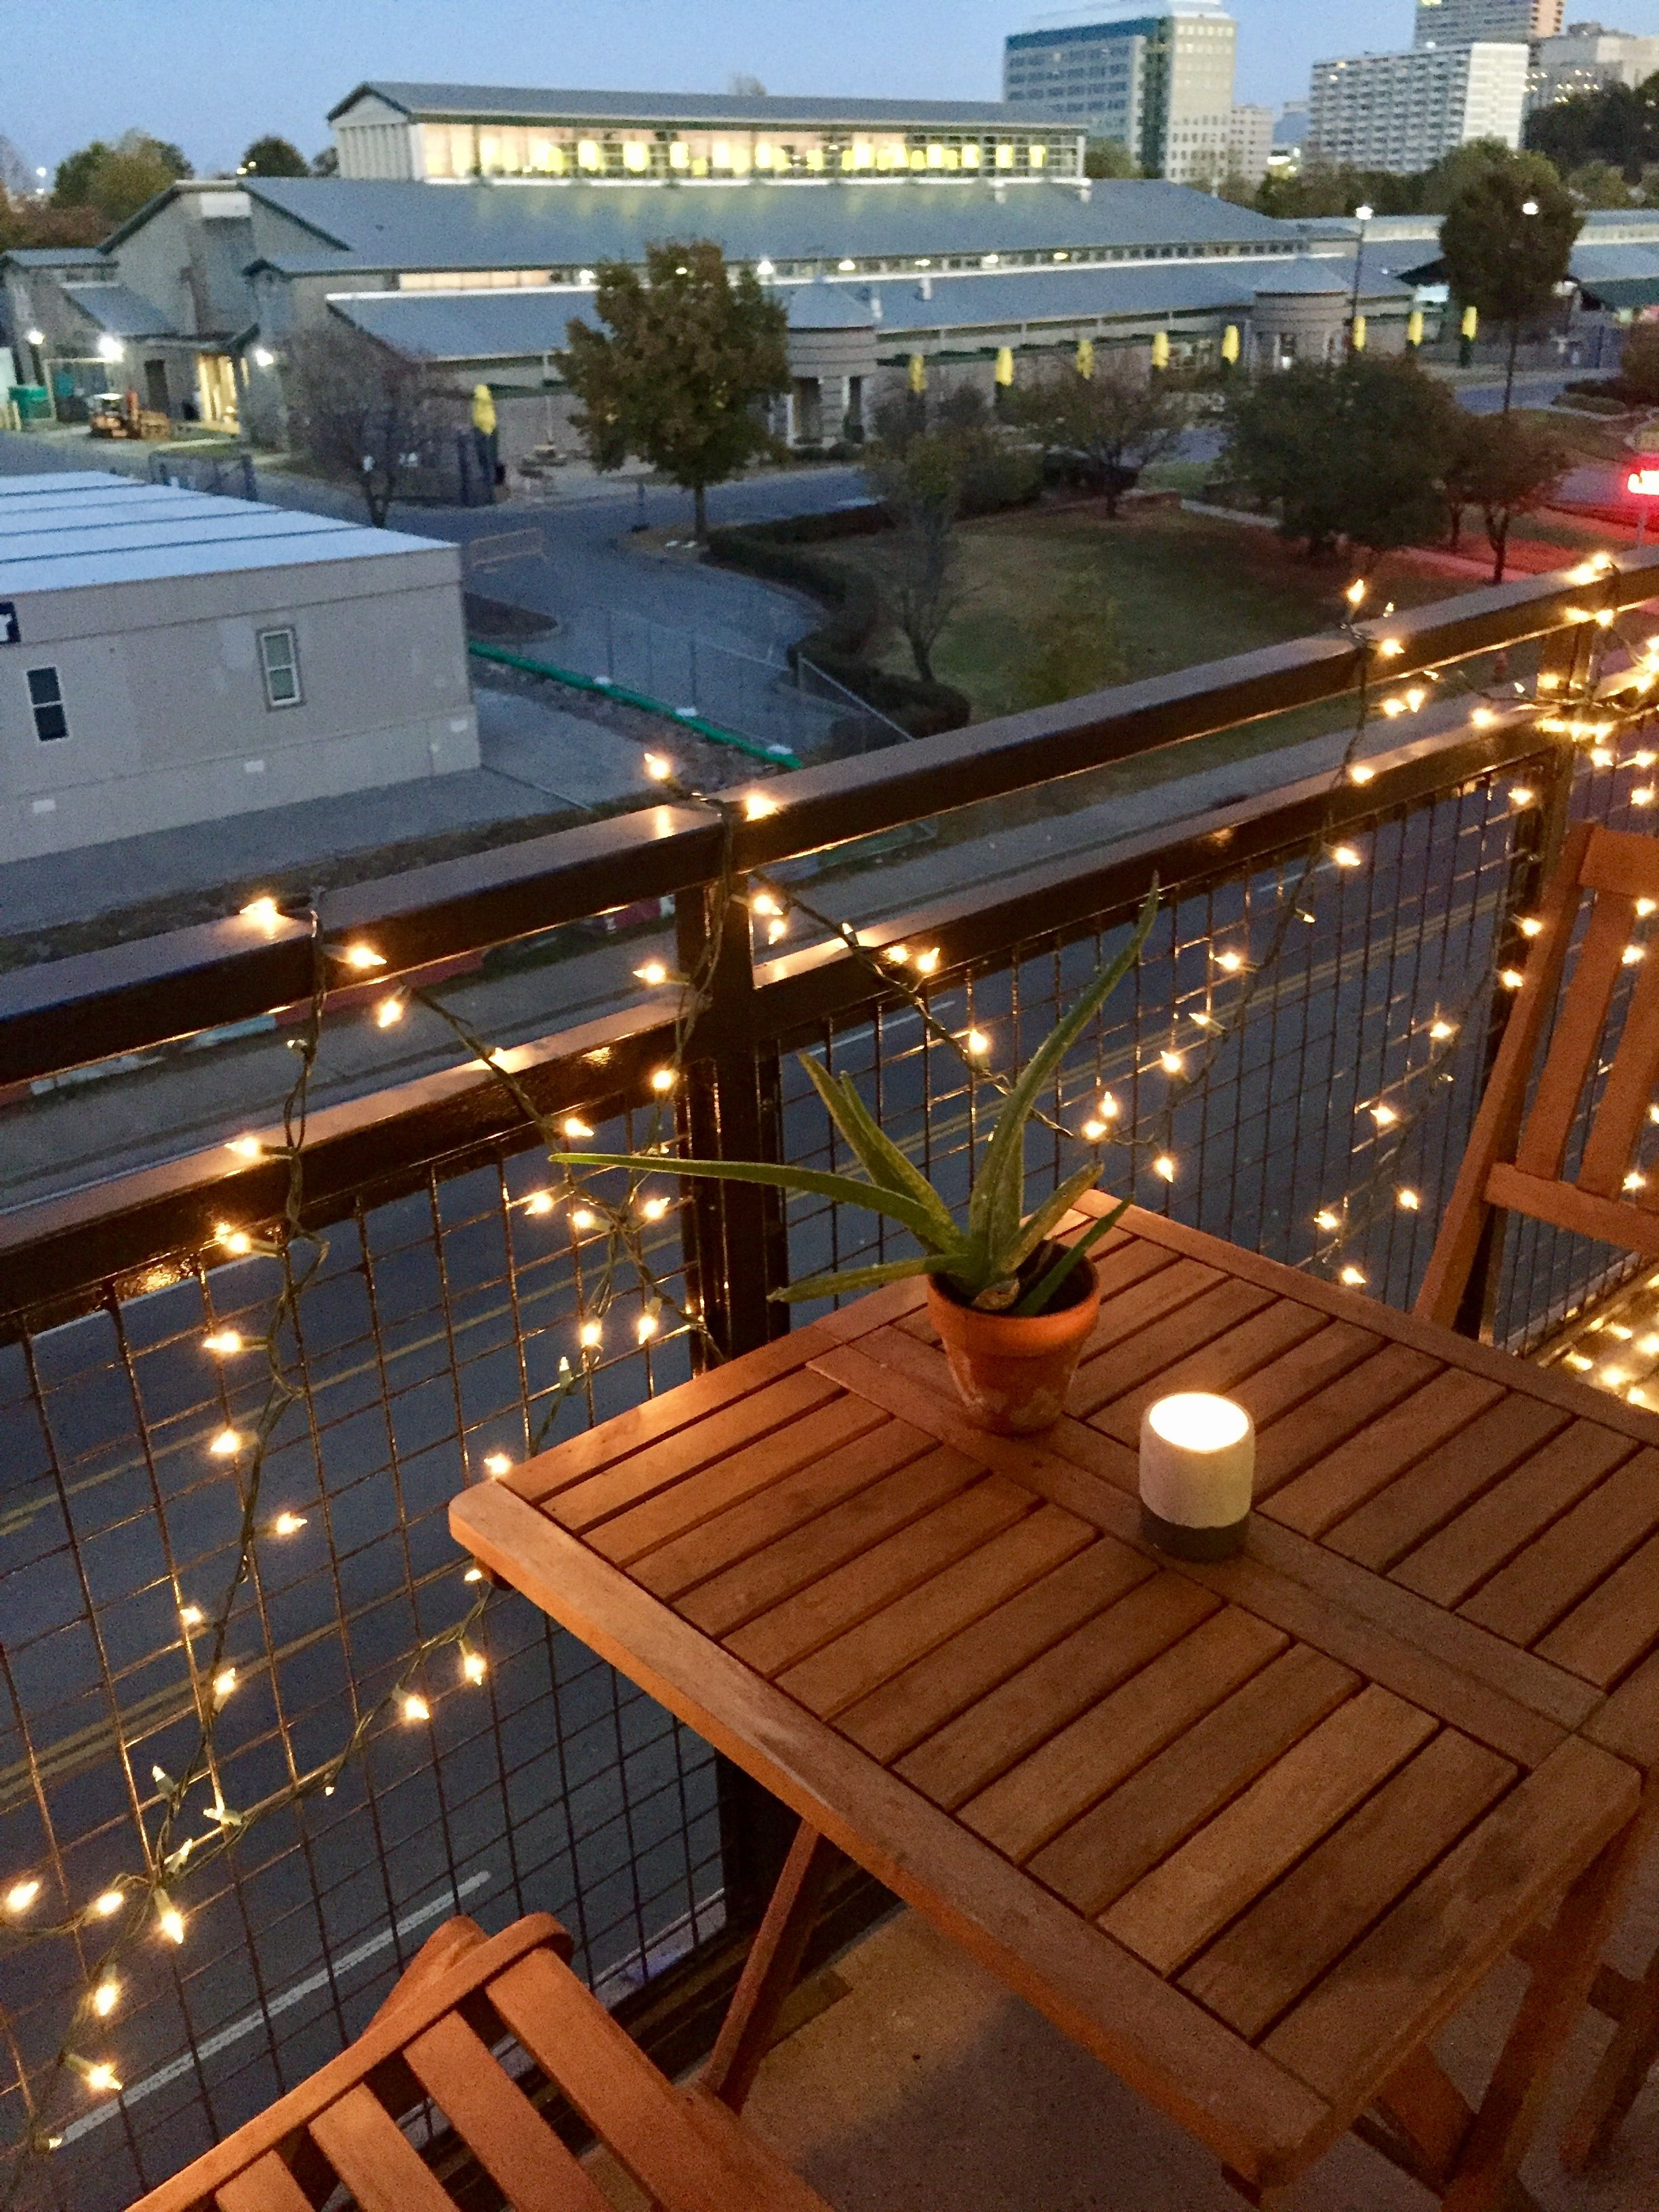 Small Apartment Balcony Garden Ideas: Pin On Apartment Design And Decor